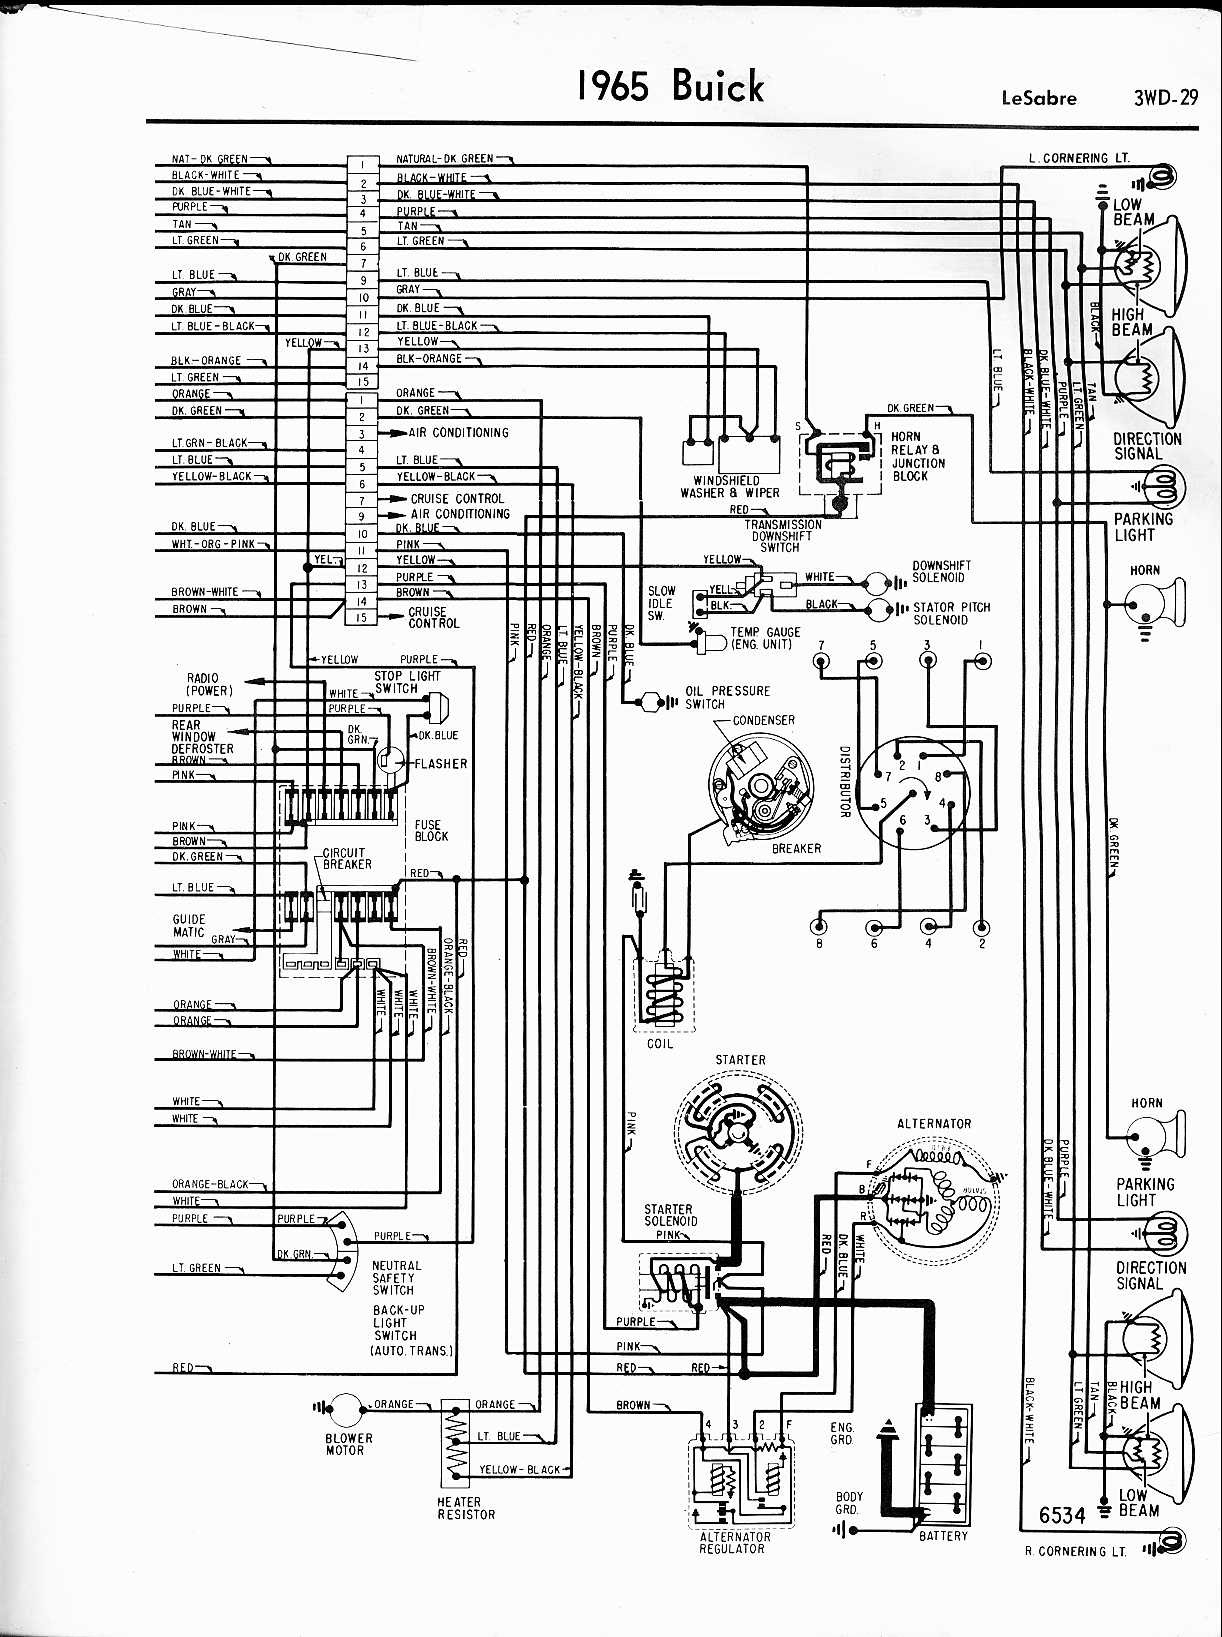 95 Buick Riviera Engine Wiring Wiring Diagrams Register Register Miglioribanche It